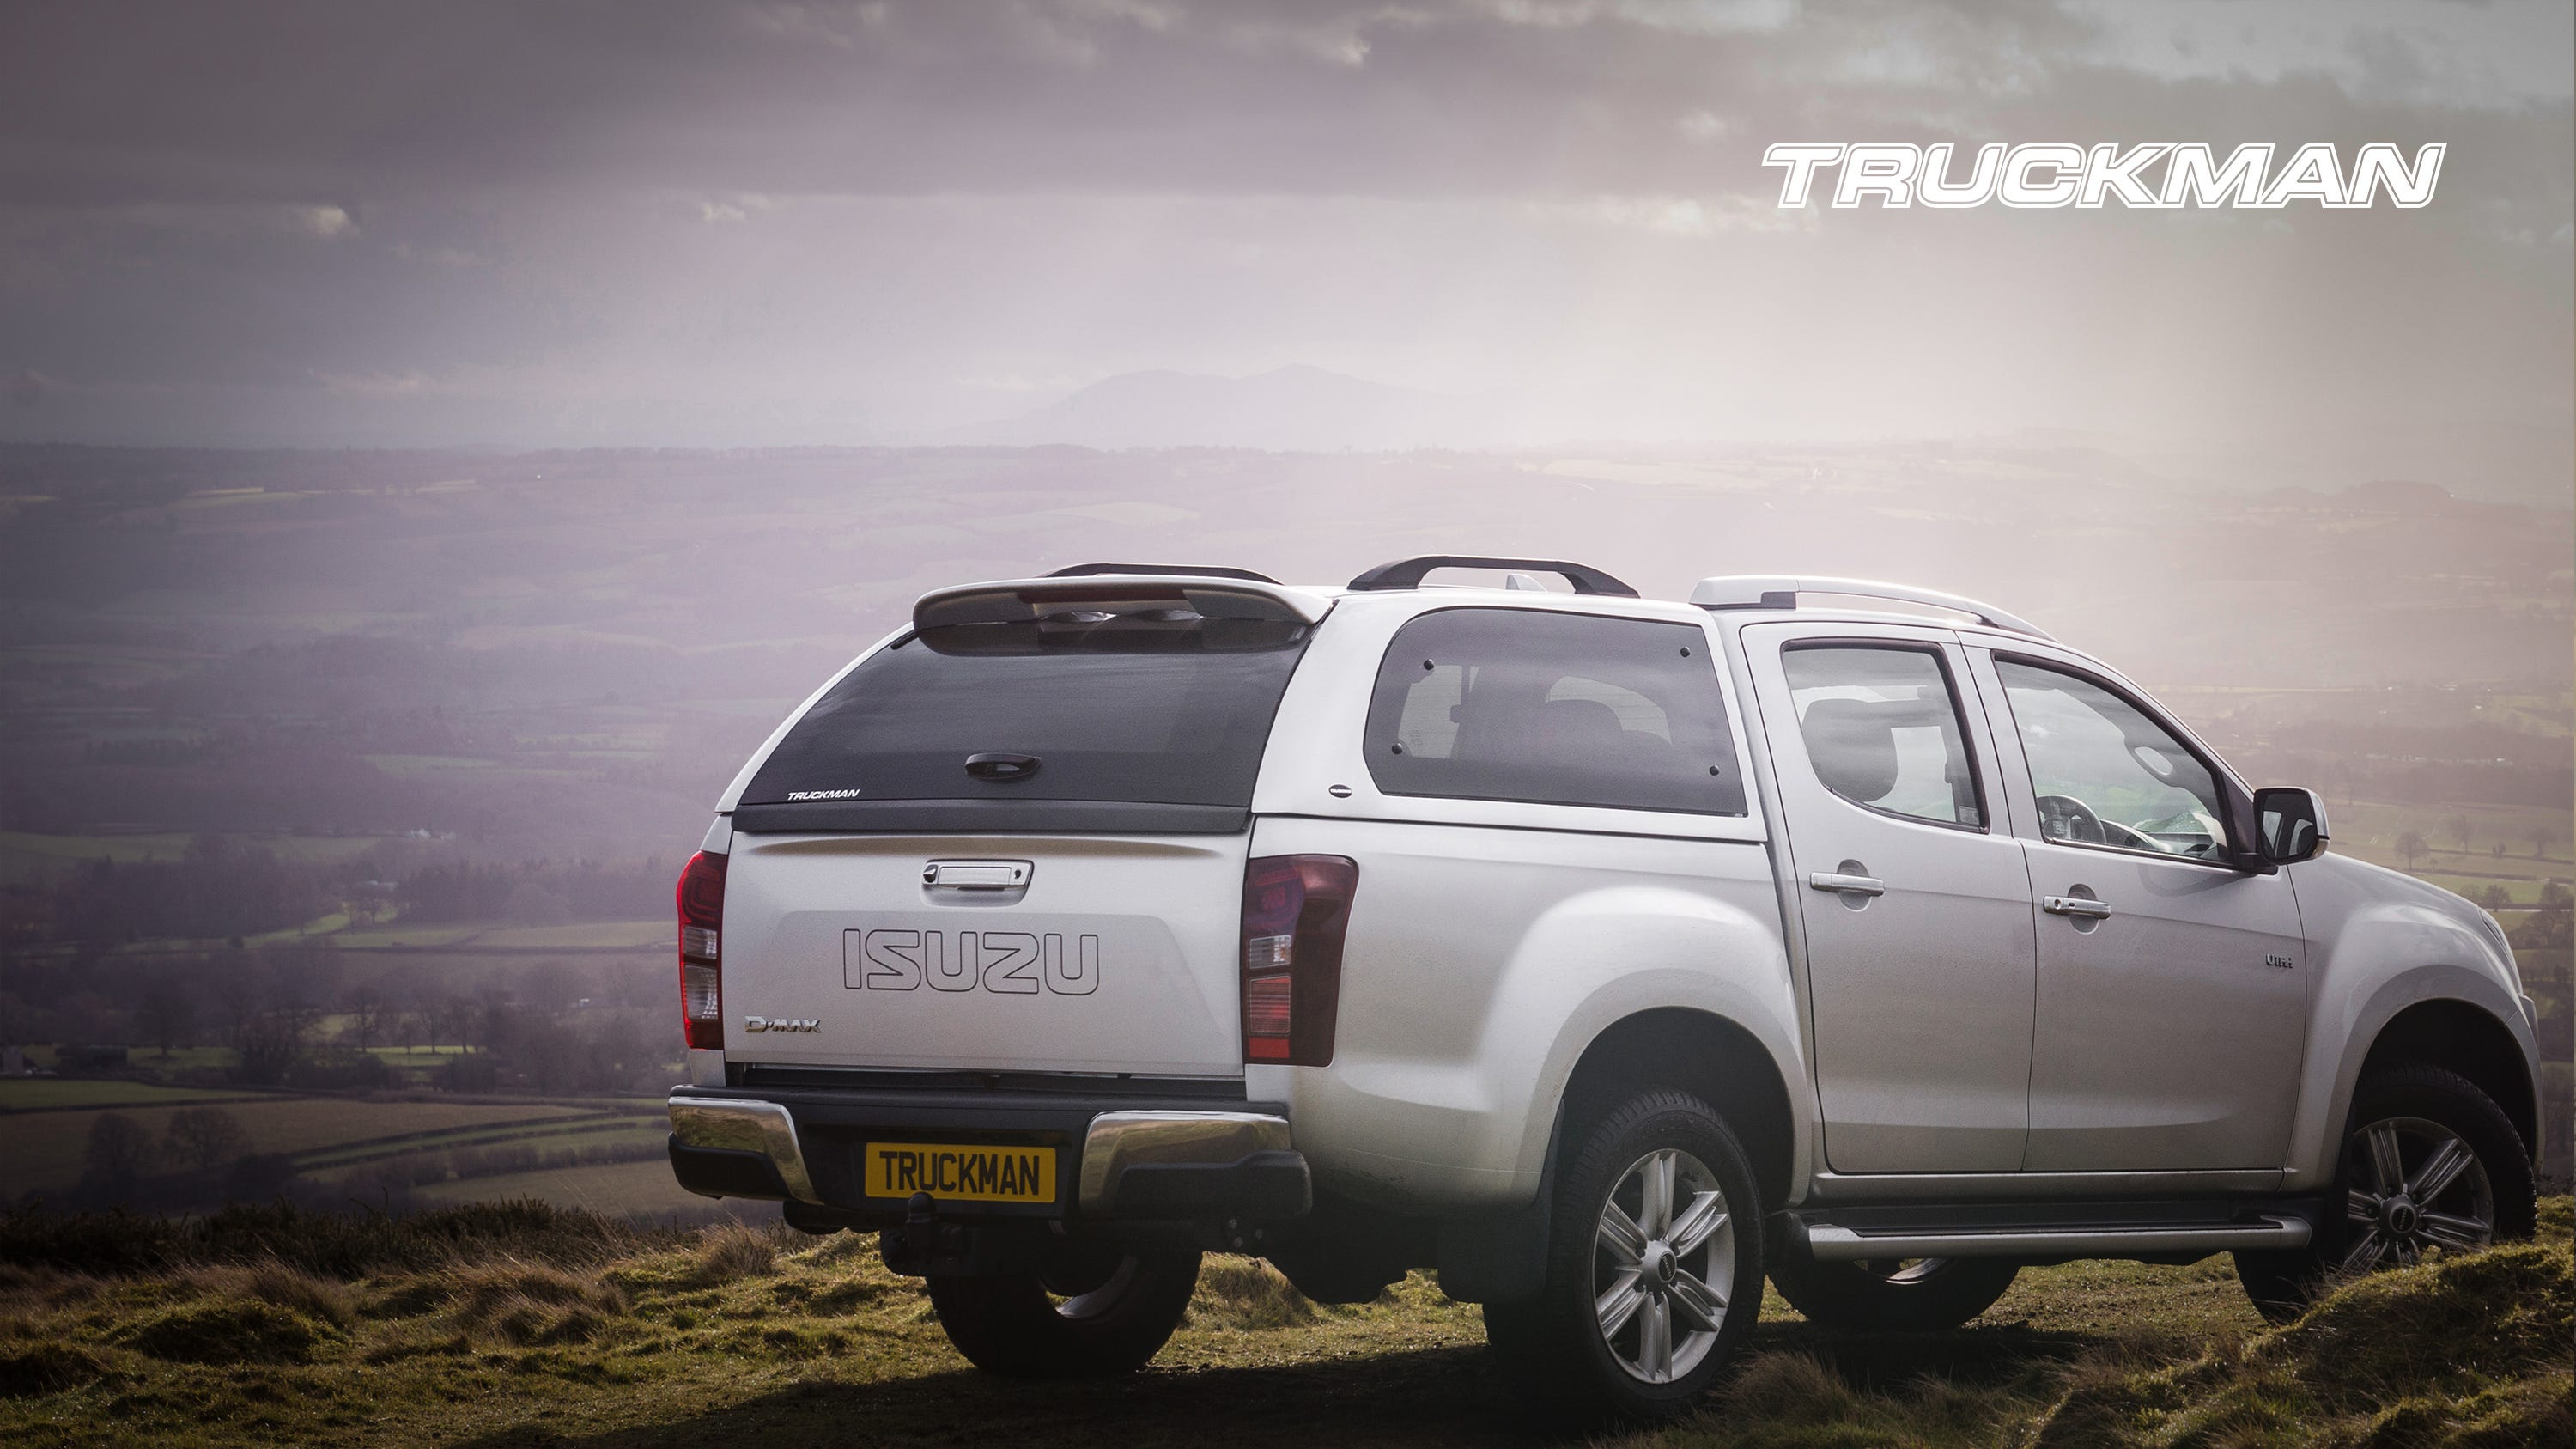 Isuzu D-Max Double Cab Fitted With a Truckman Grand Hardtop Canopy (Landscape)